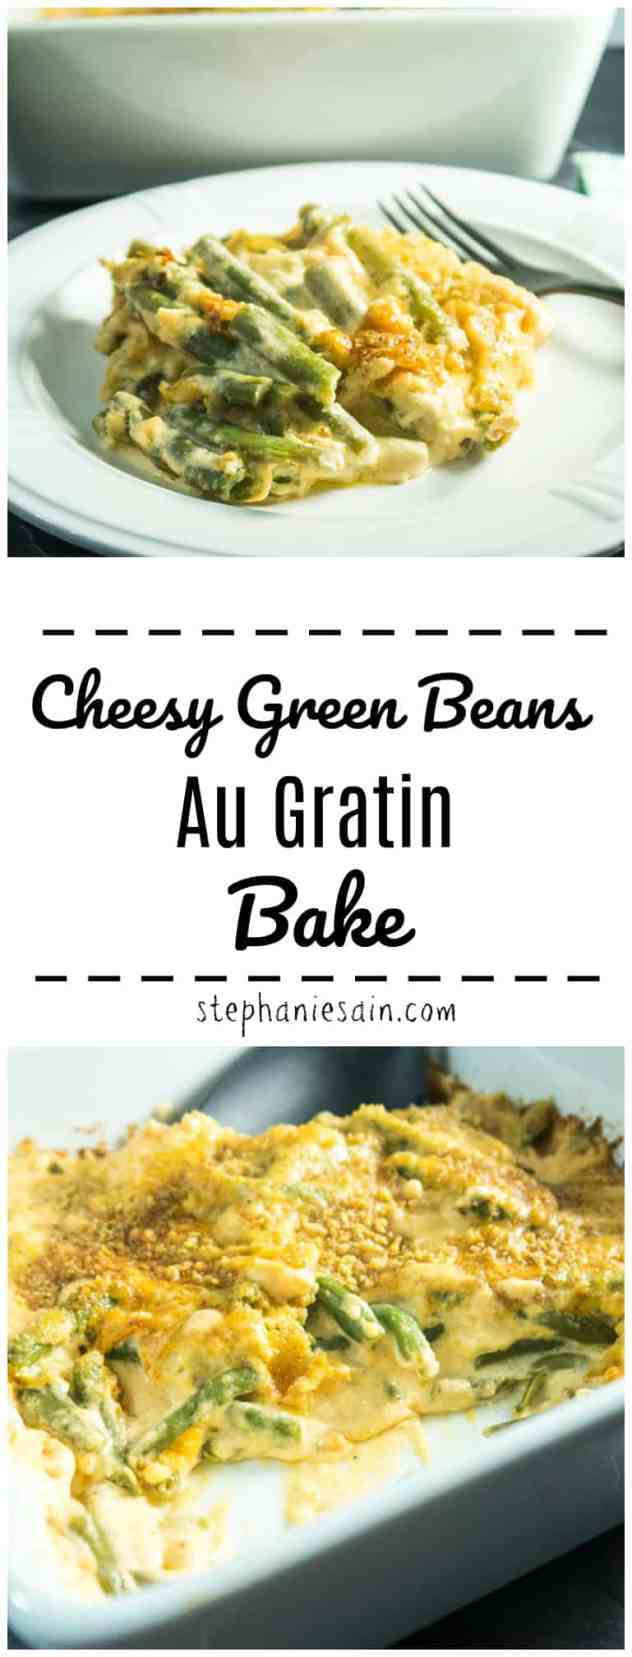 Cheesy Green Beans Au Gratin Bake is a rich, creamy delicious side for your holiday table or any time. Green beans covered in a creamy, cheesy sauce and topped with a crunchy lightly browned topping. Gluten Free & Vegetarian.